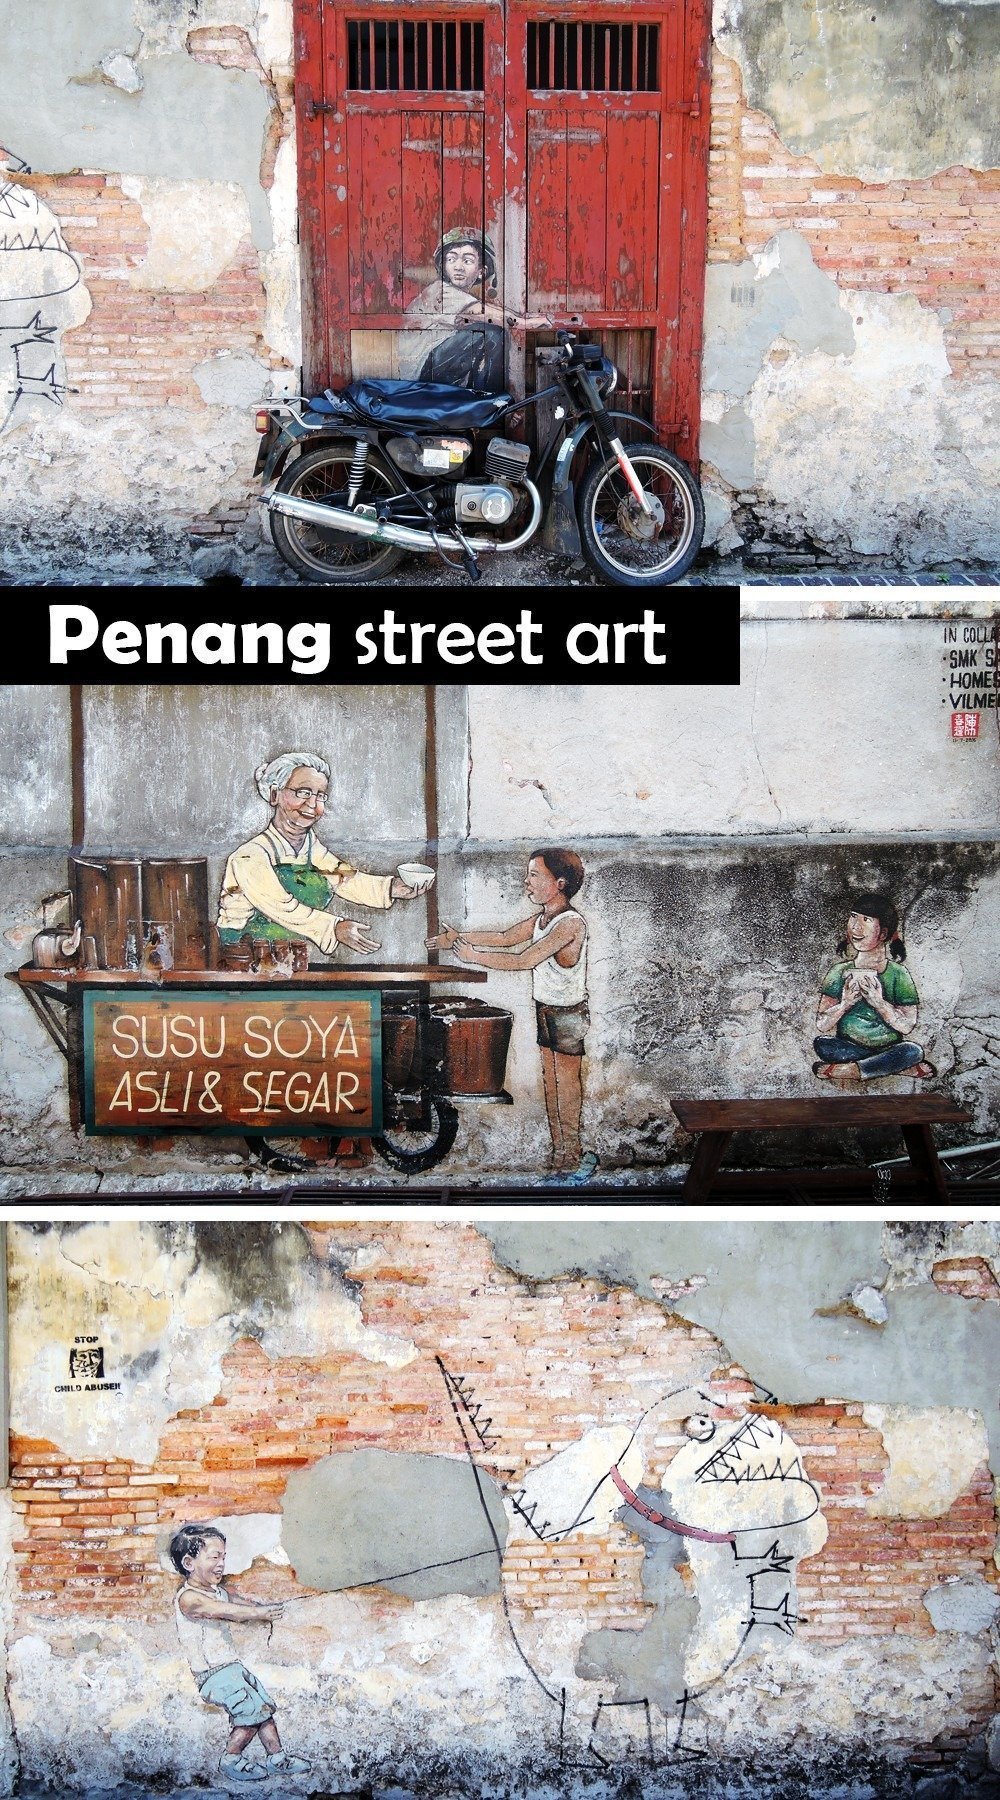 Street art brings life to George Town's old historical buildings, giving the UNESCO heritage site a fresh face. When in Penang, keep your eyes peeled for the caricatures and murals, and make sure to go into side streets and to look up. Here are more things to do on when you visit Penang, Malaysia!